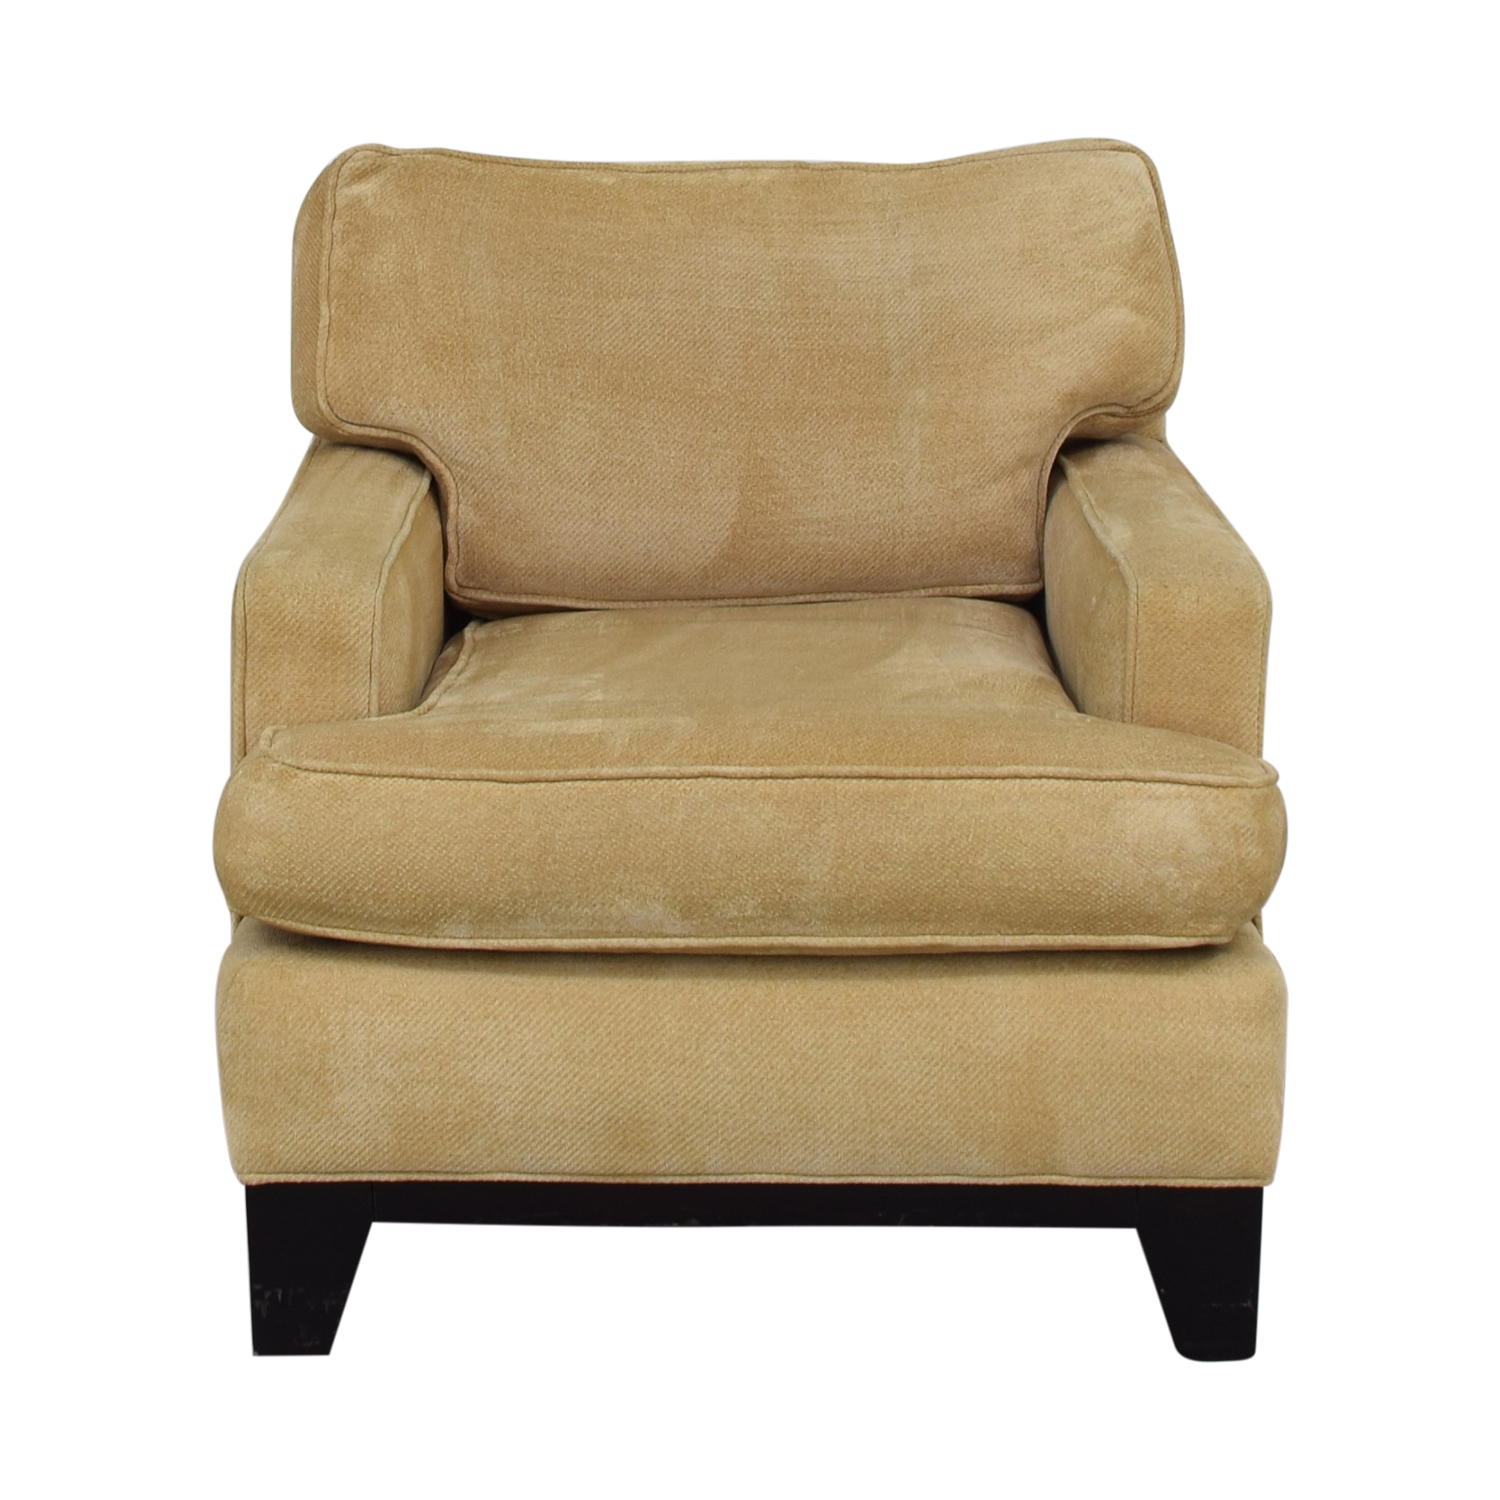 shop Williams Sonoma Beige Accent Chair Williams Sonoma Chairs